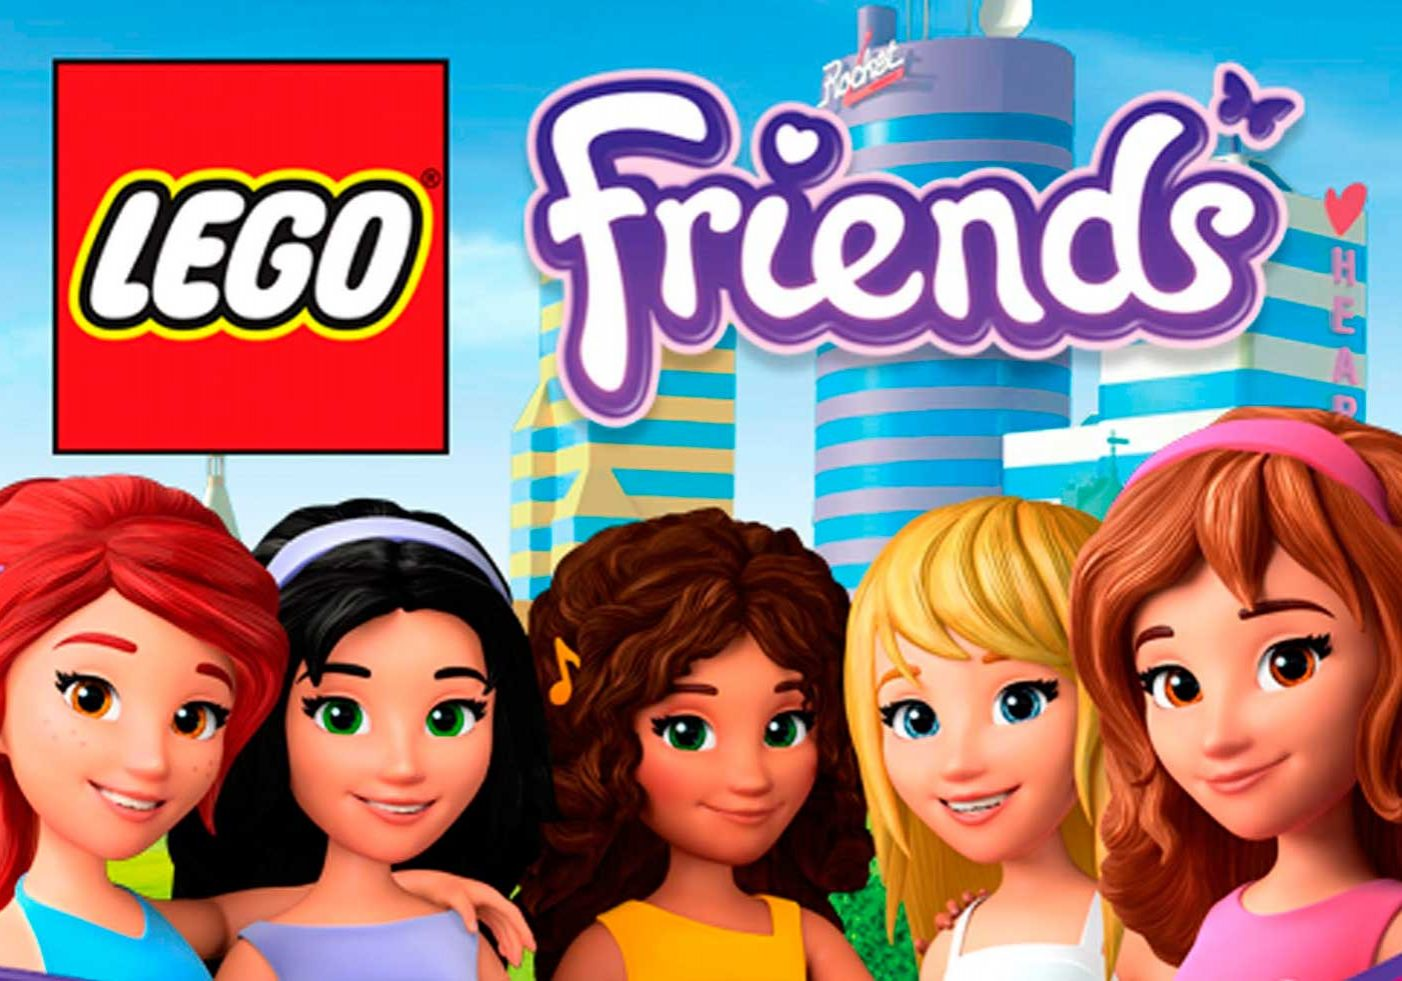 lego-friends-front